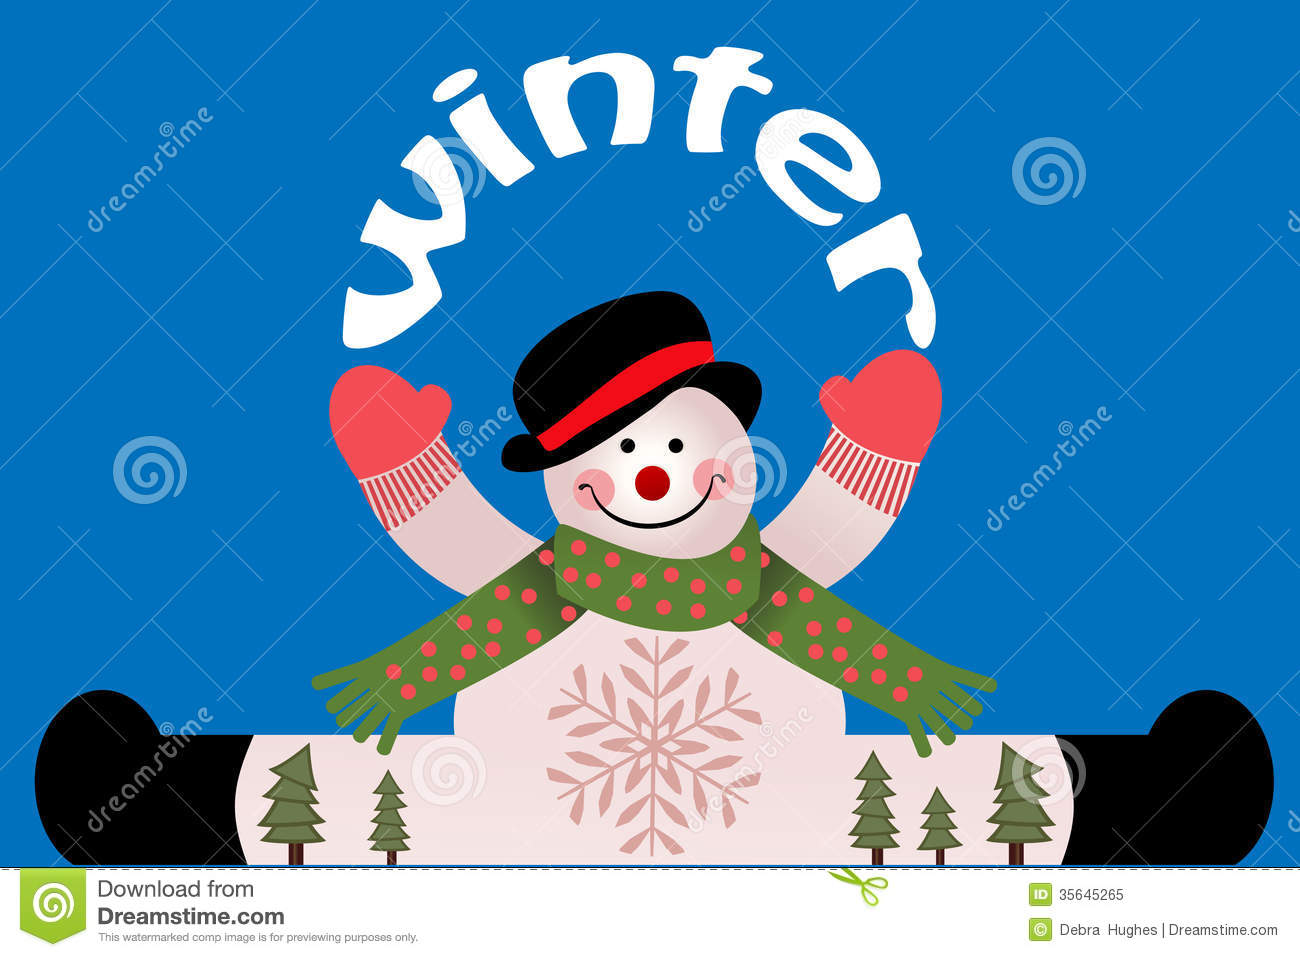 Colorful christmas tree of hands royalty free stock photos image - Winter Snowman Royalty Free Stock Photo Image 35645265